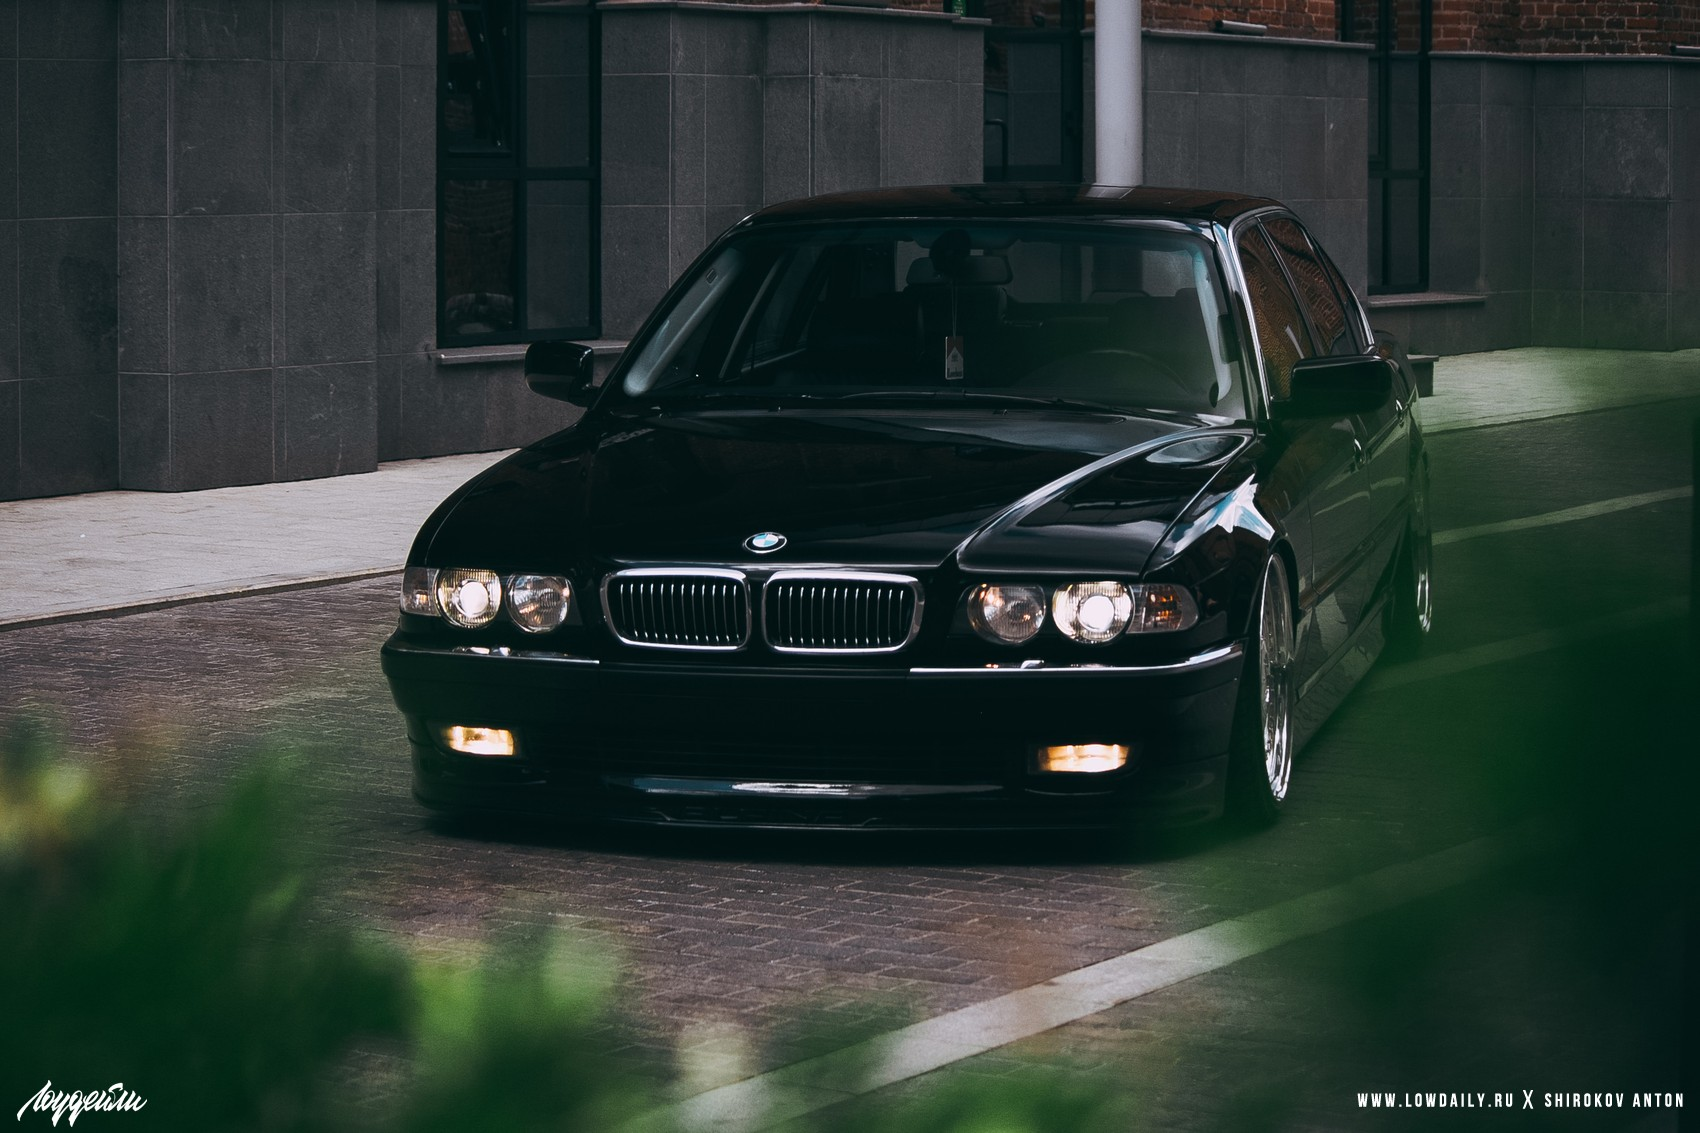 BMW E38 Lowdaily _MG_7073